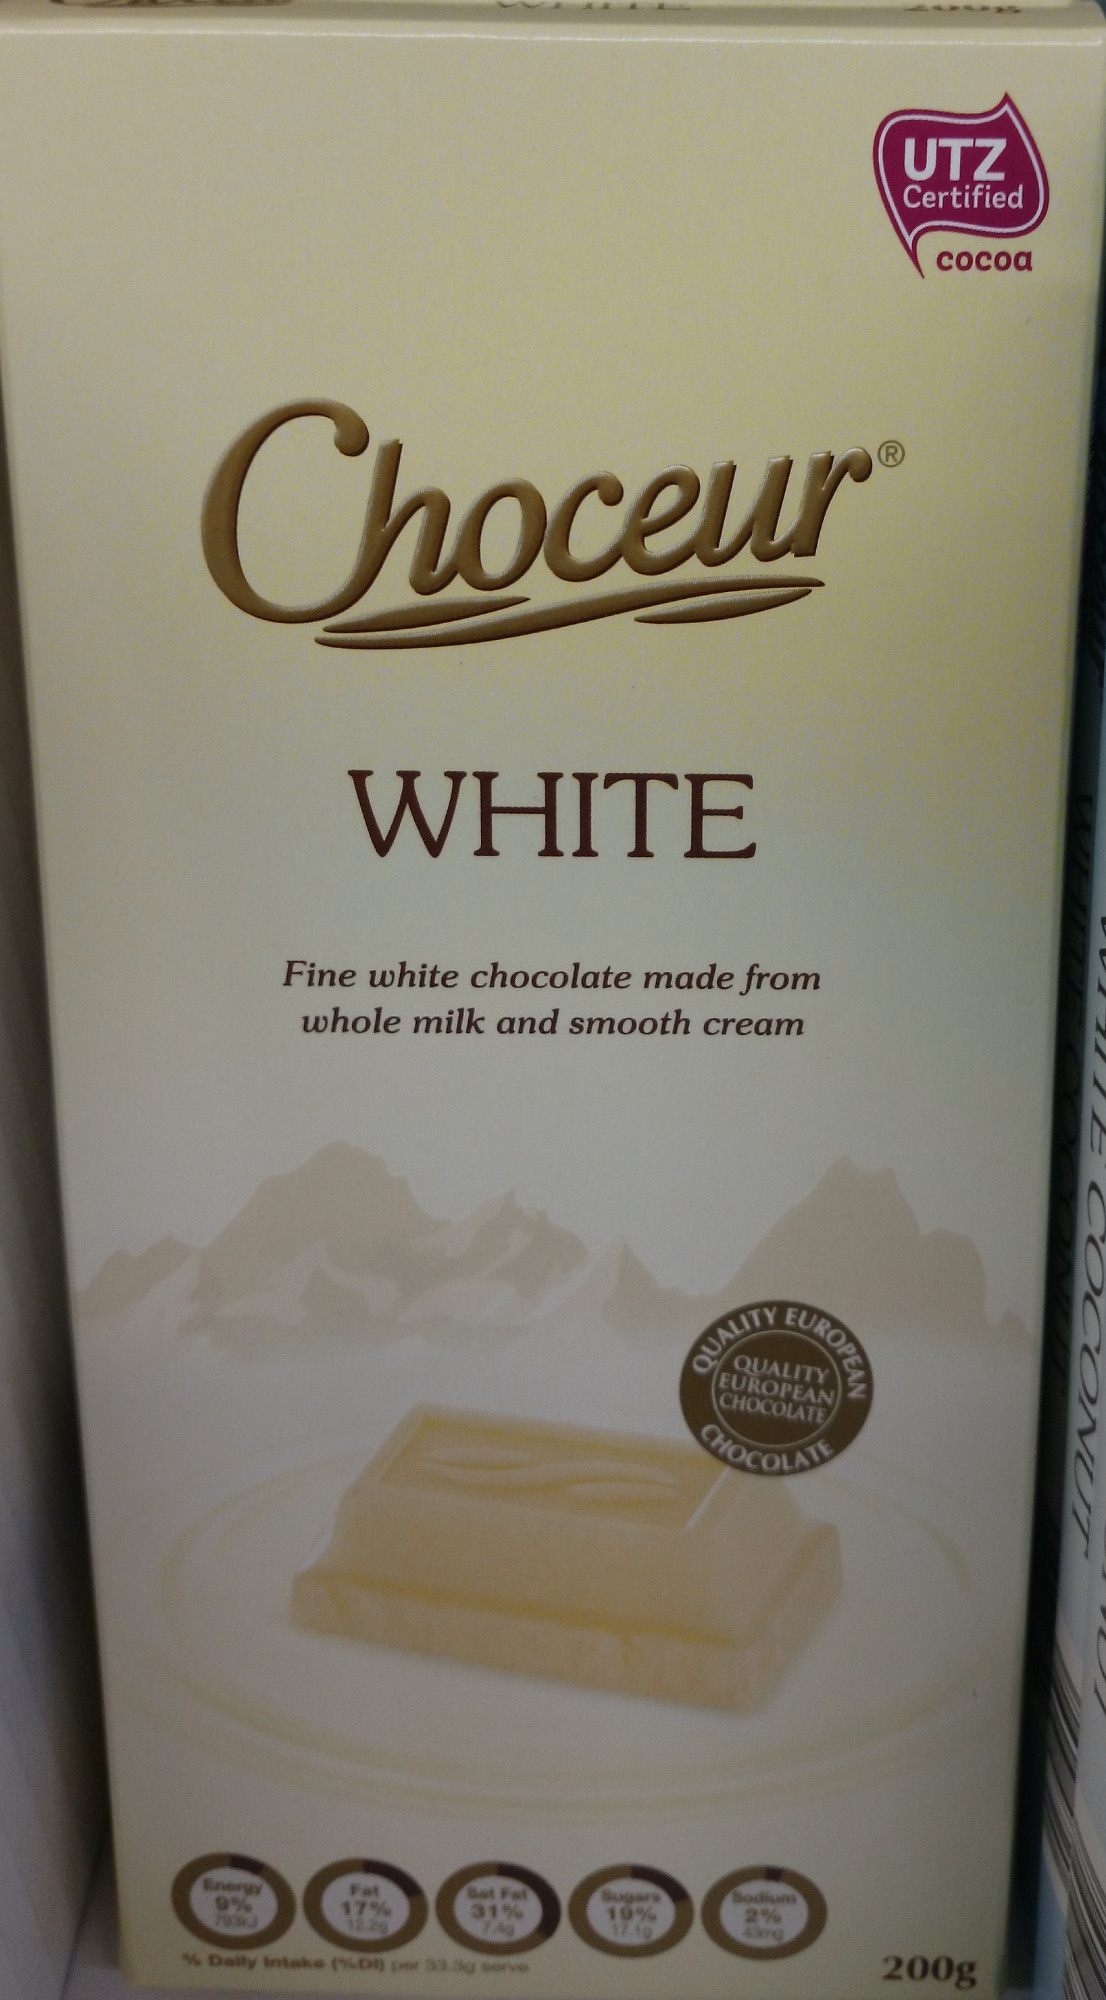 Choceur White Chocolate - Product - en